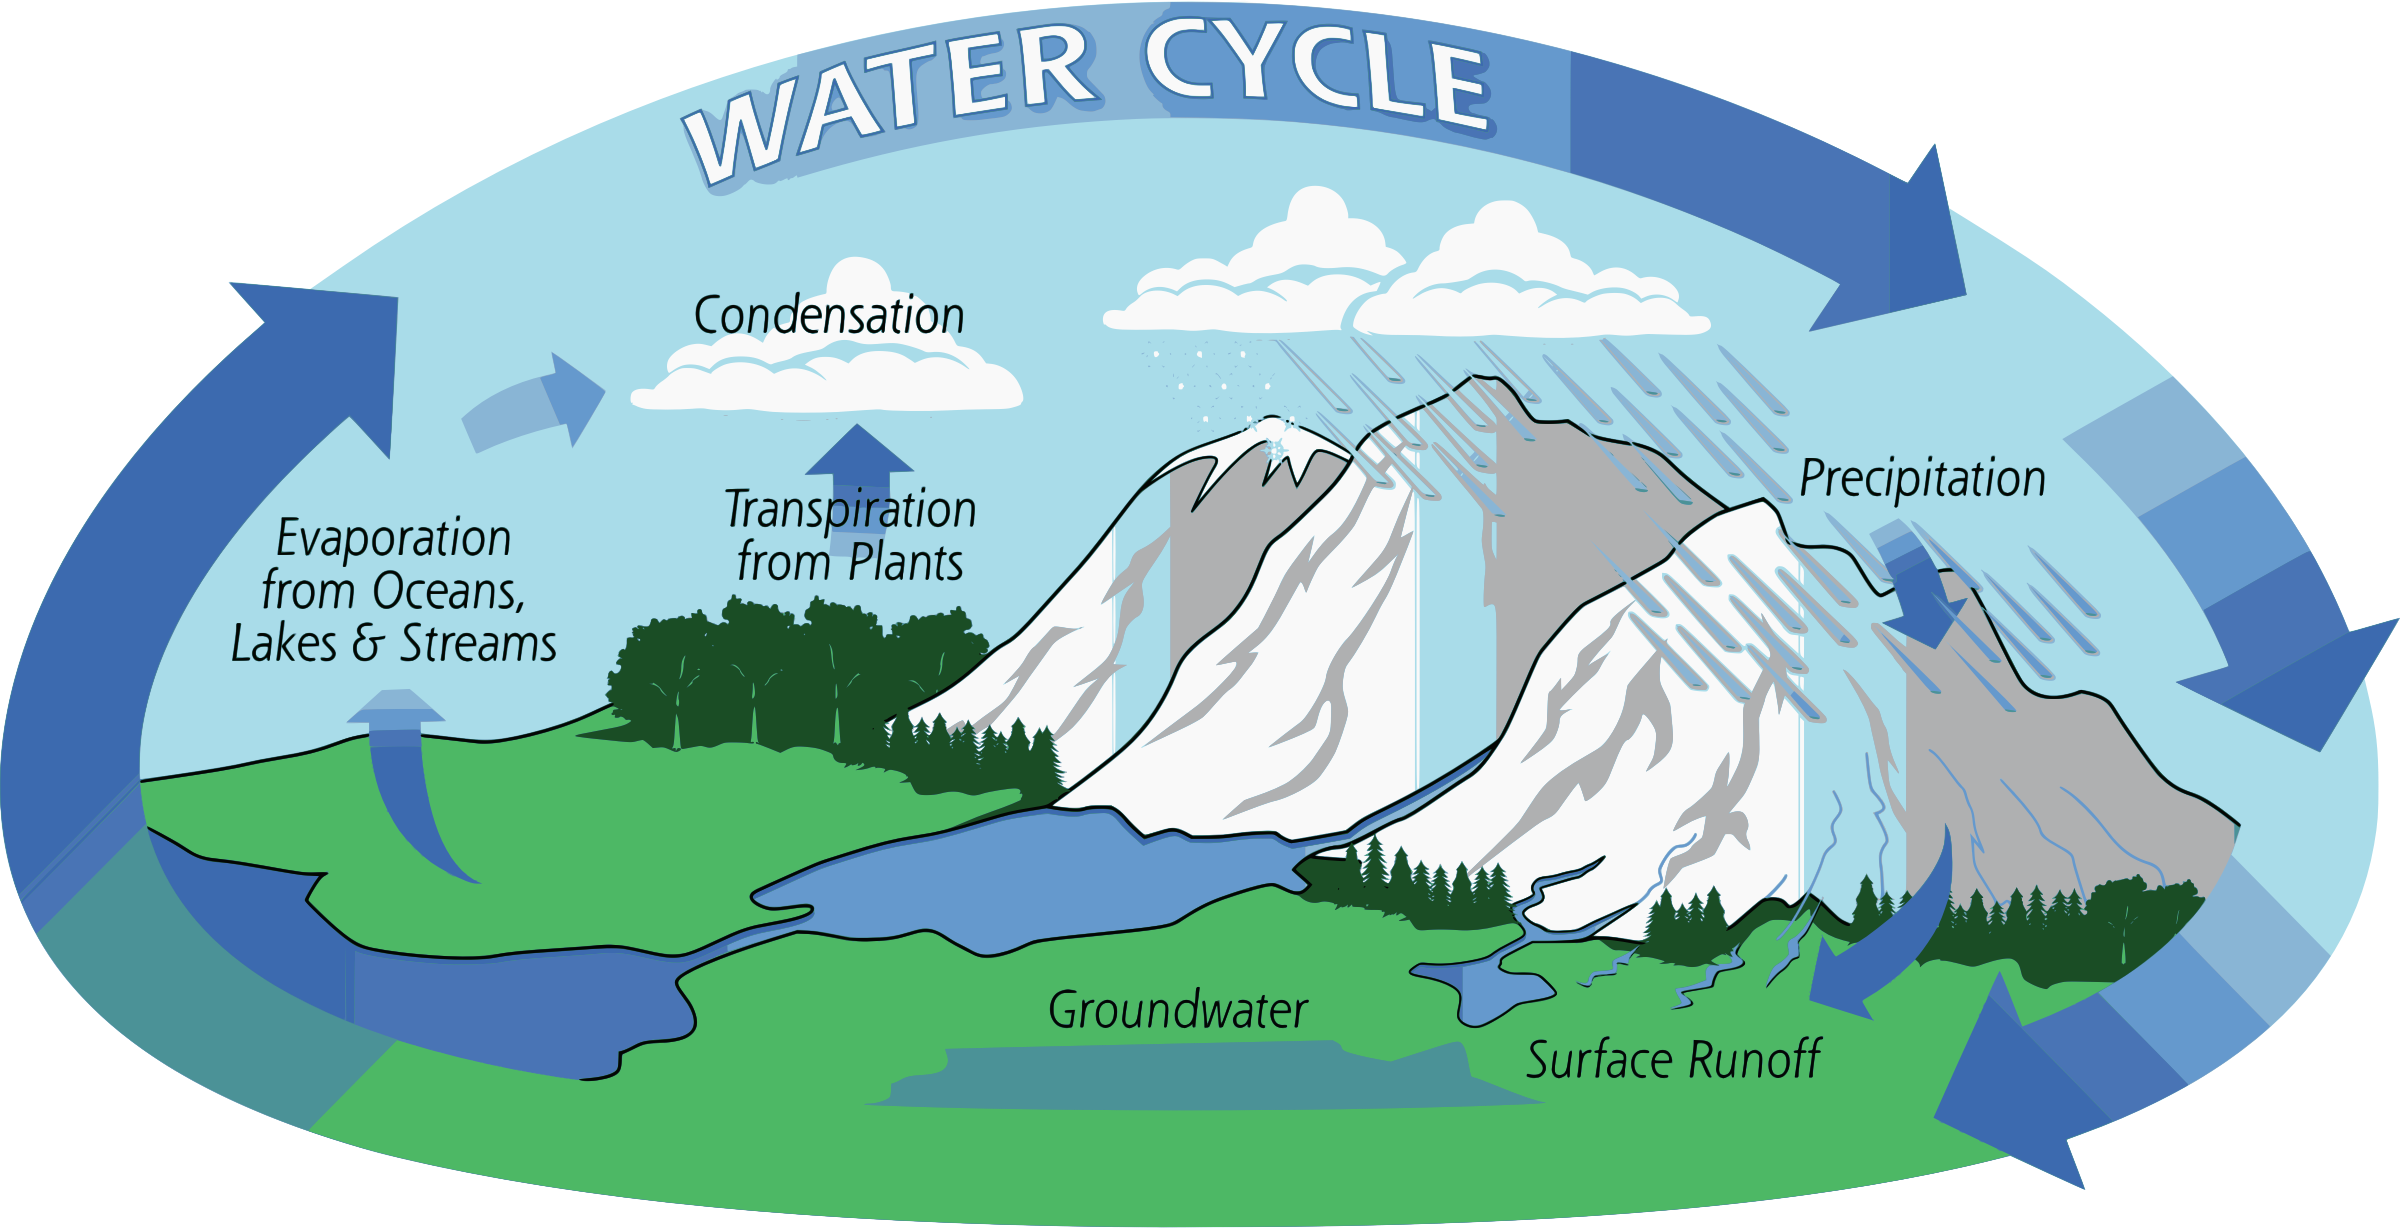 clipart water cycle rh openclipart org water cycle diagram clipart Black and White Clip Art Water Cycle